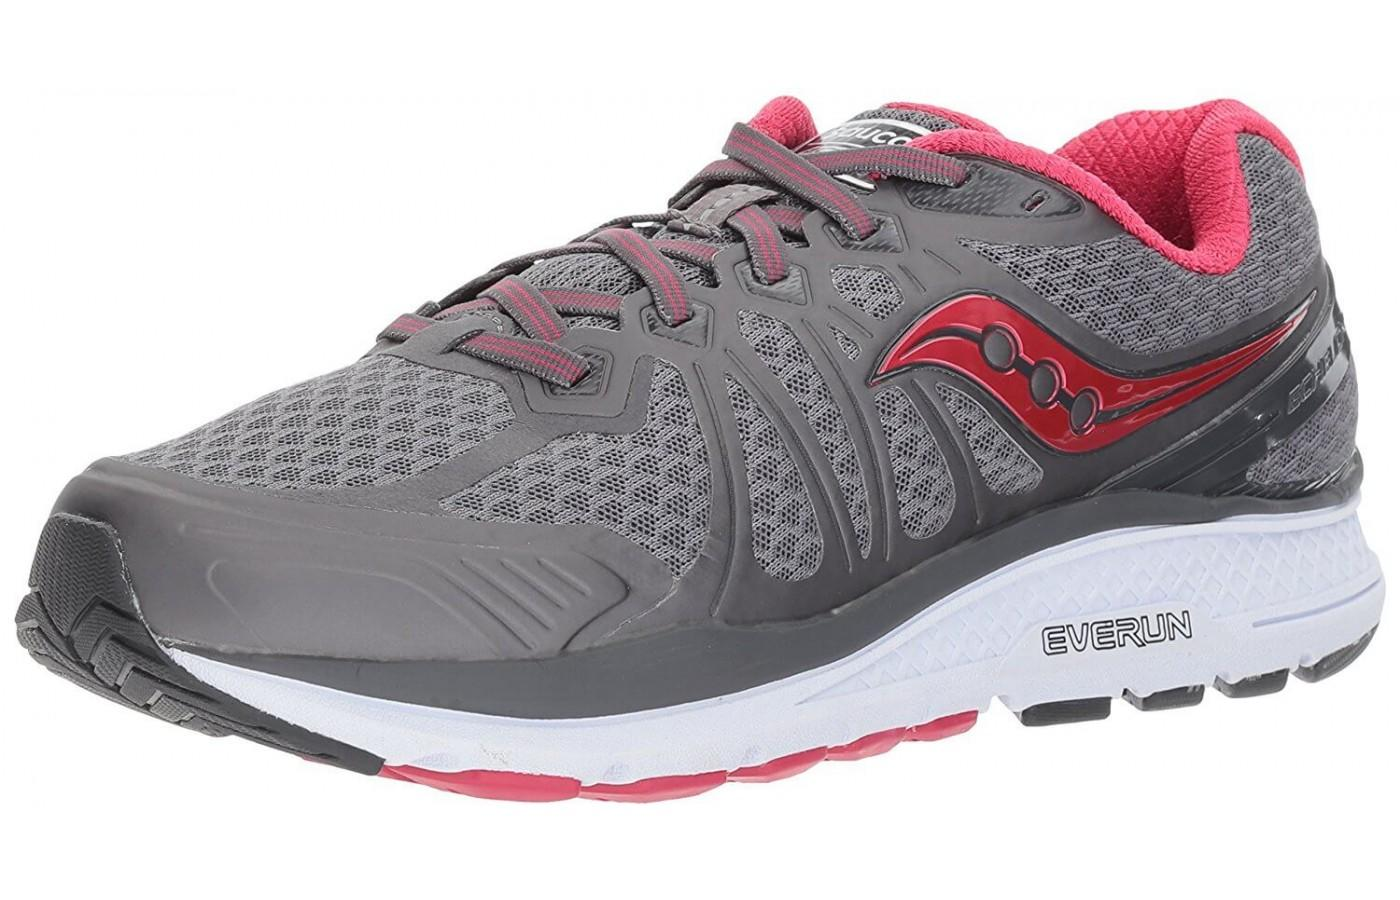 The Saucony Echelon 6 shown from the front/side